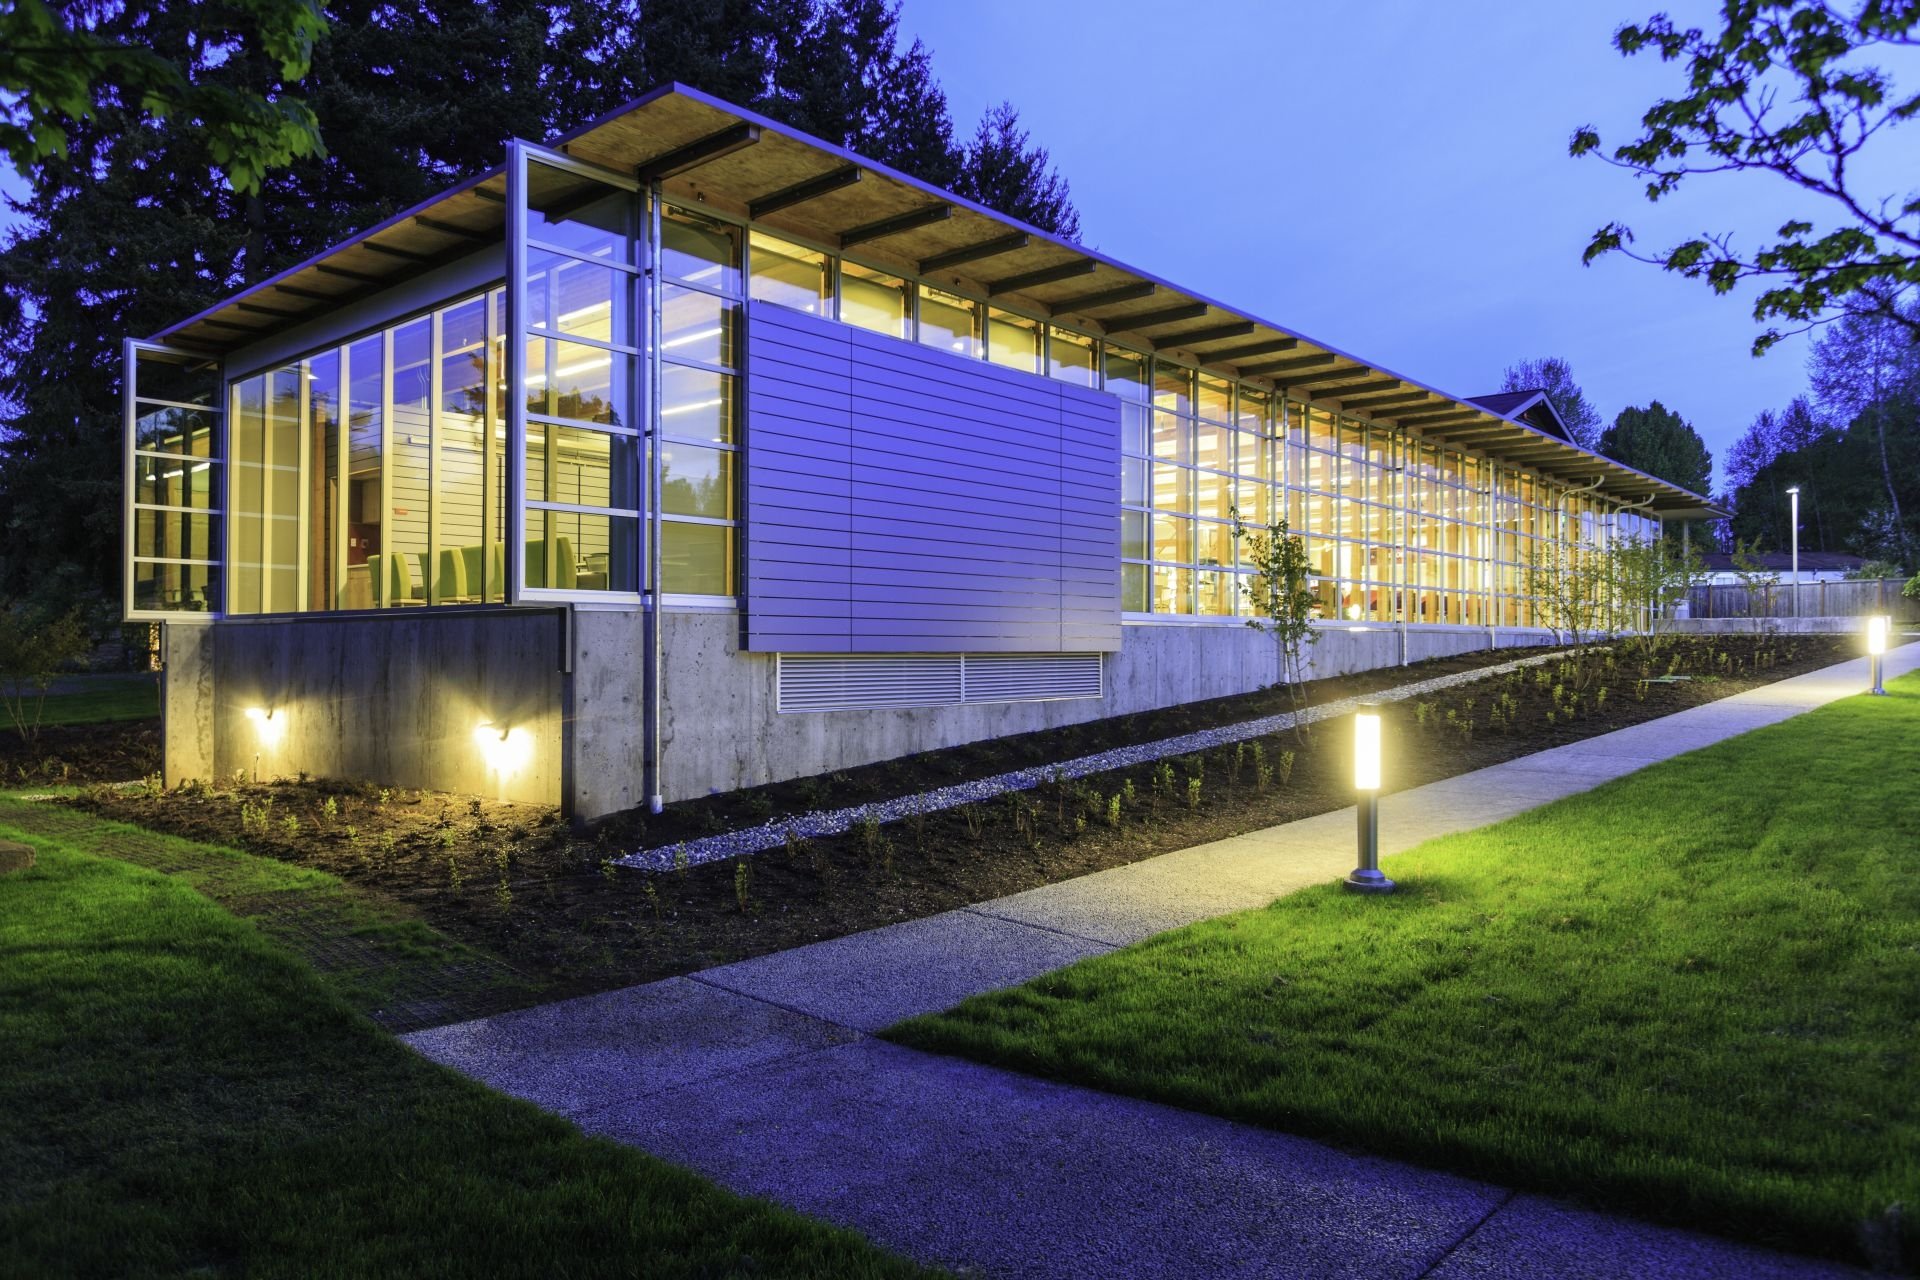 2004 - King County voters approve a $172 million Capital Bond to complete 16 new libraries, 11 expanded libraries, and 14 renovated libraries.